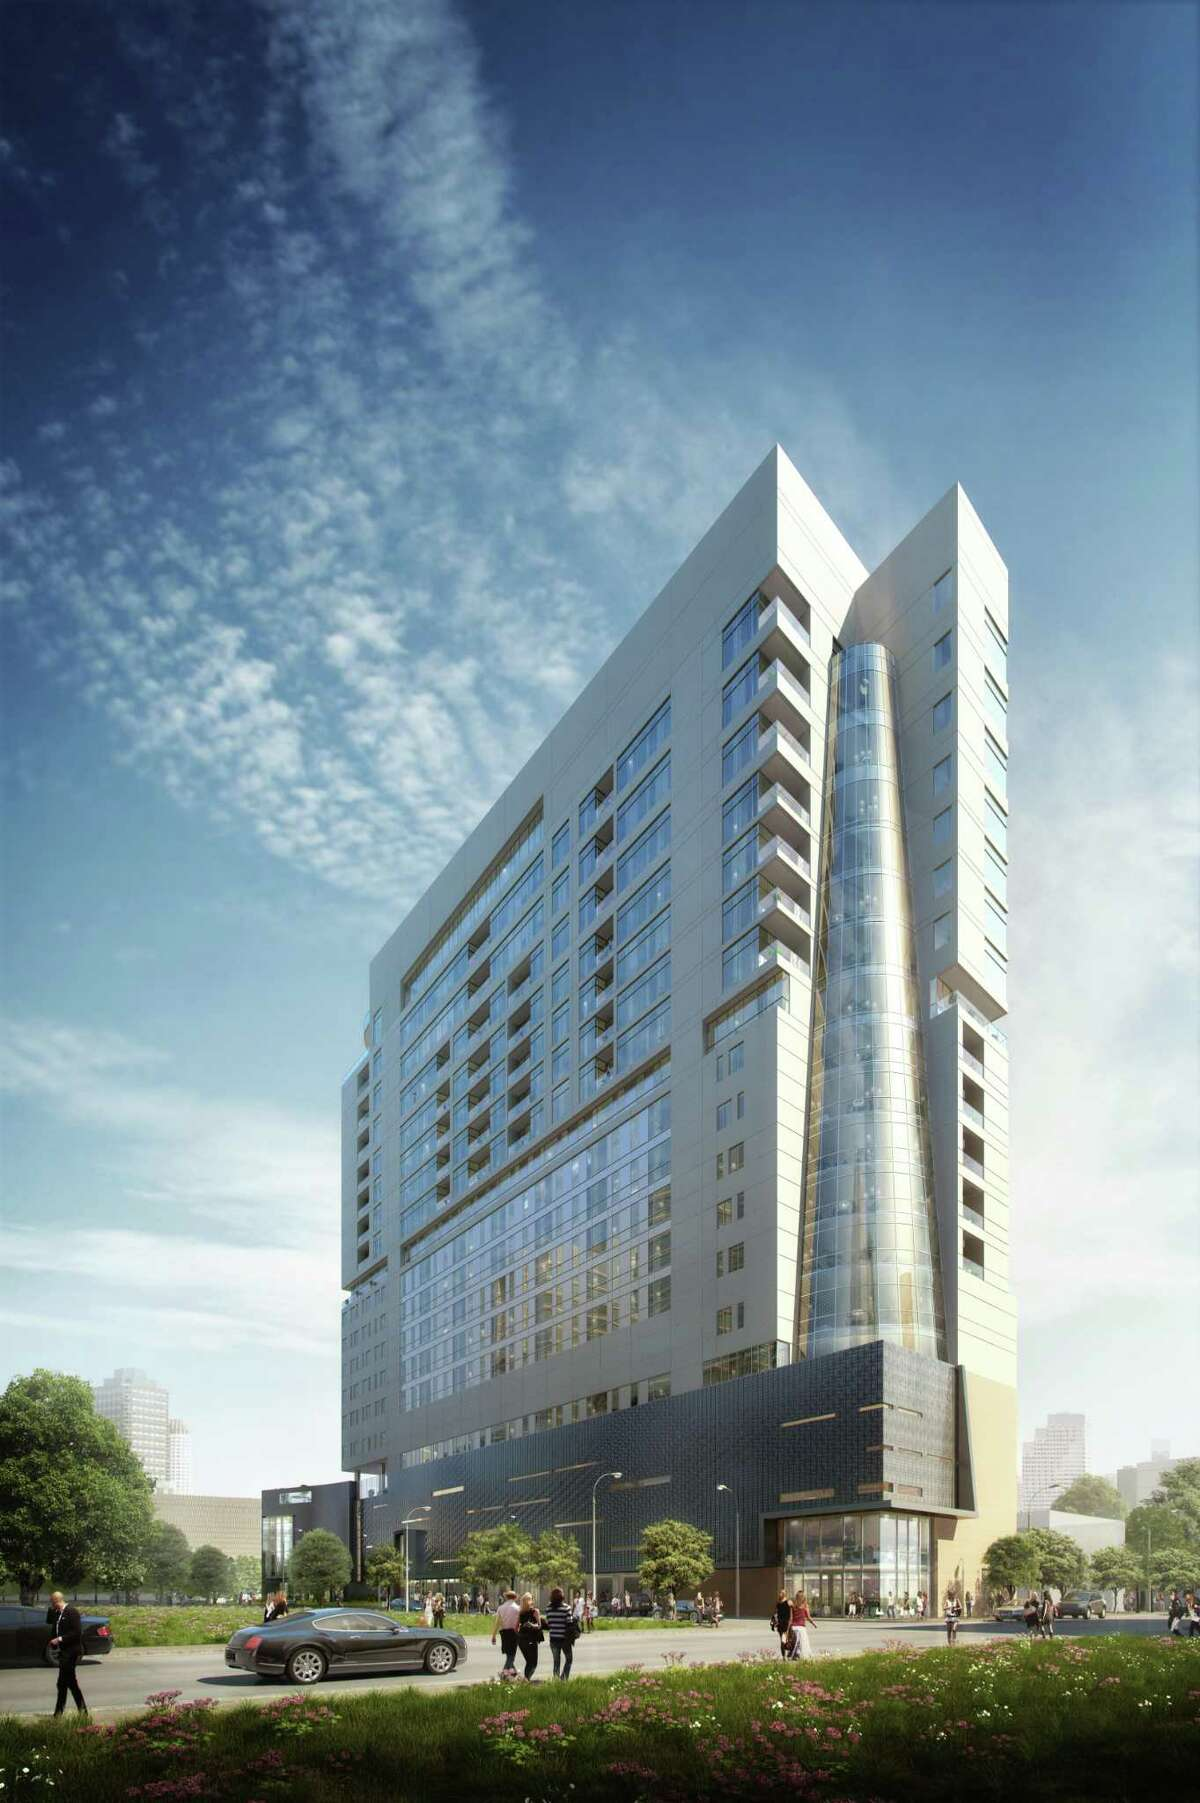 The city also awarded more than $10 million in incentives to the Arts Residences and Thompson San Antonio hotel through the Center City Housing Incentive Policy - the largest in the program's history. The high-rise will have more than 60 condos costing between $400,000 and $4.5 million.